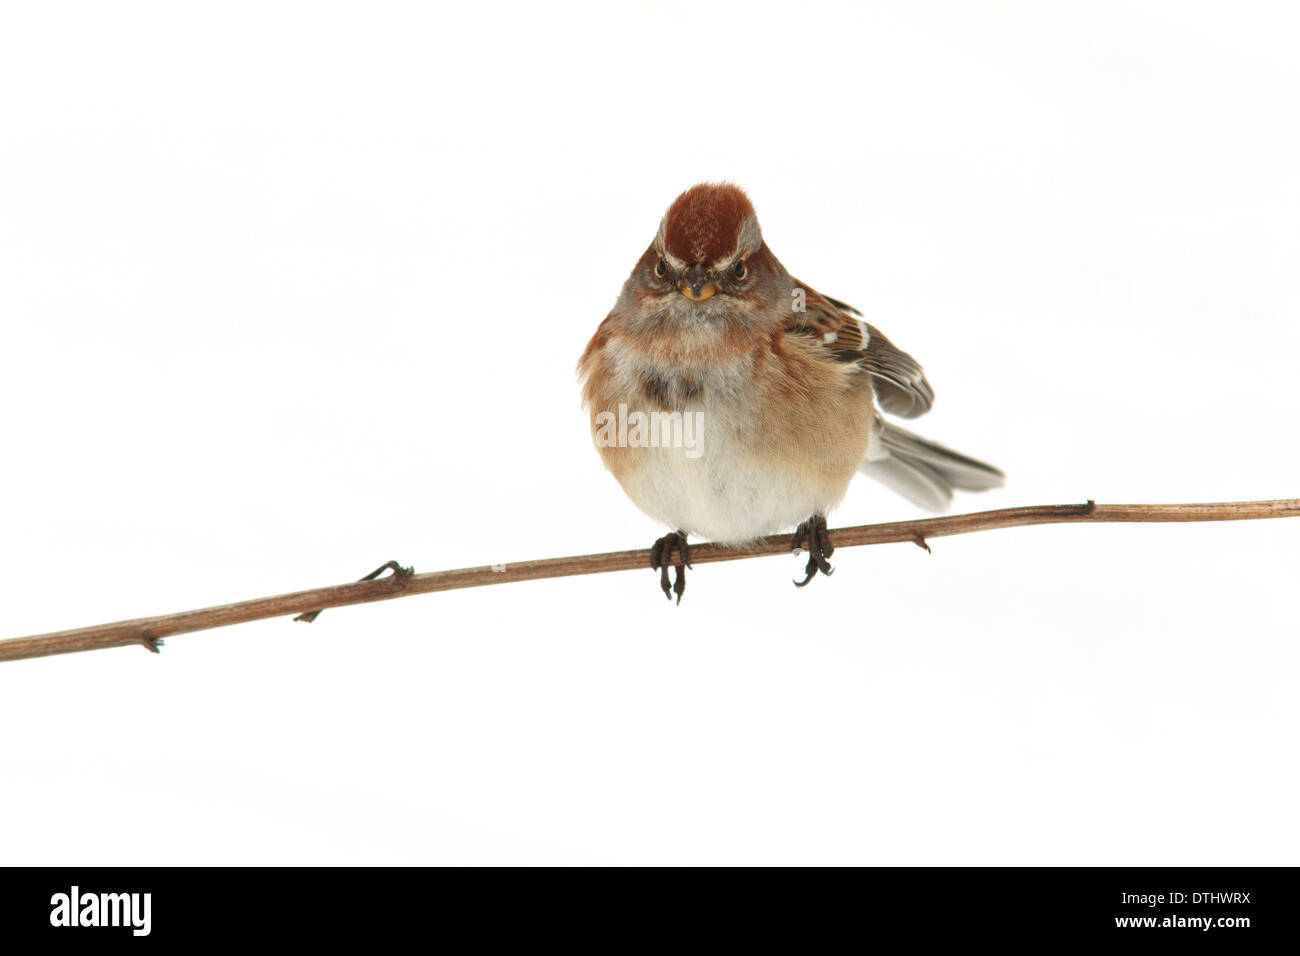 American tree sparrow (Spizella arborea) on a tree branch with snow behind it. - Stock Image